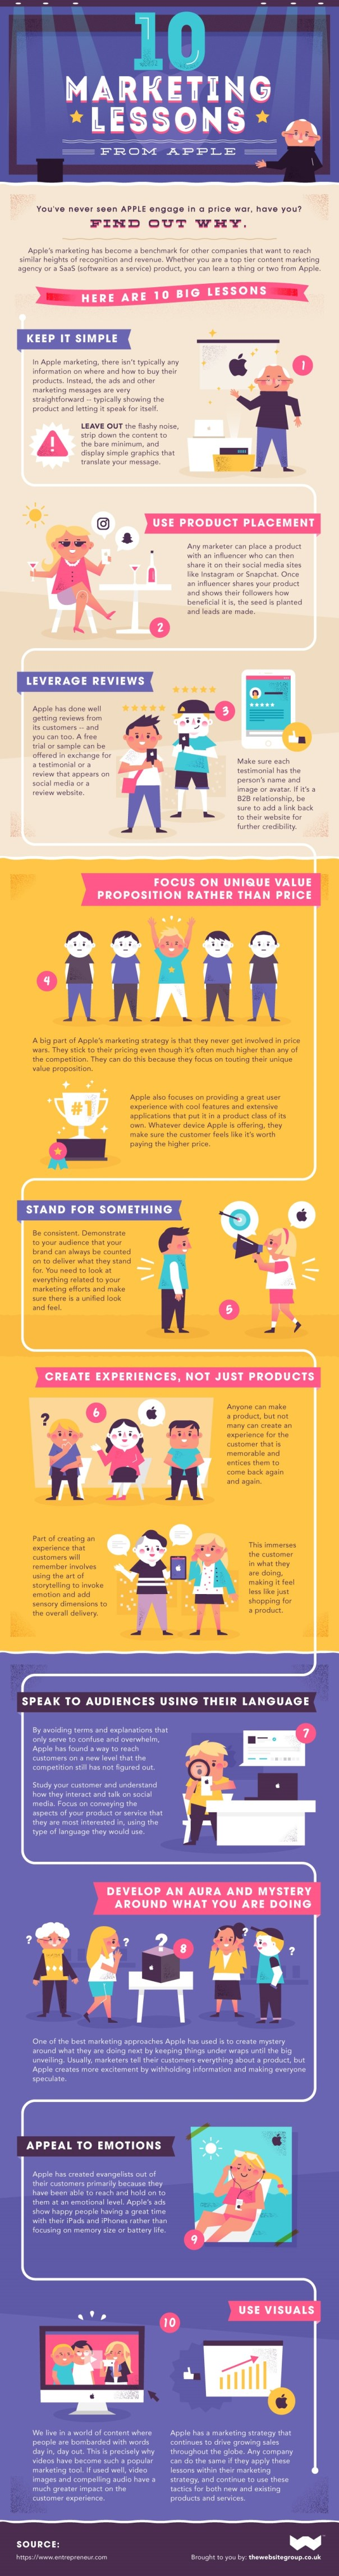 10 Marketing Lessons You Can Learn from Apple [Infographic]